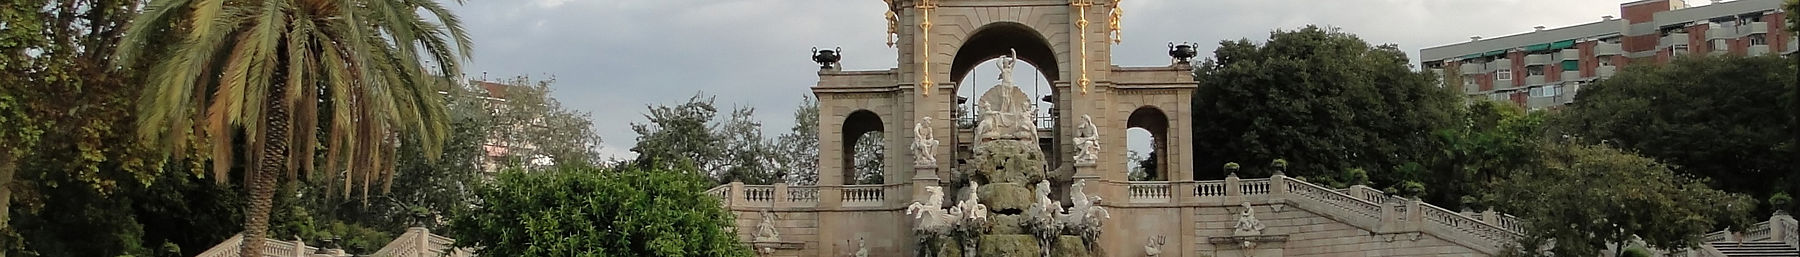 Public art above the fountain of Ciutadella Park in Ciutat Vella